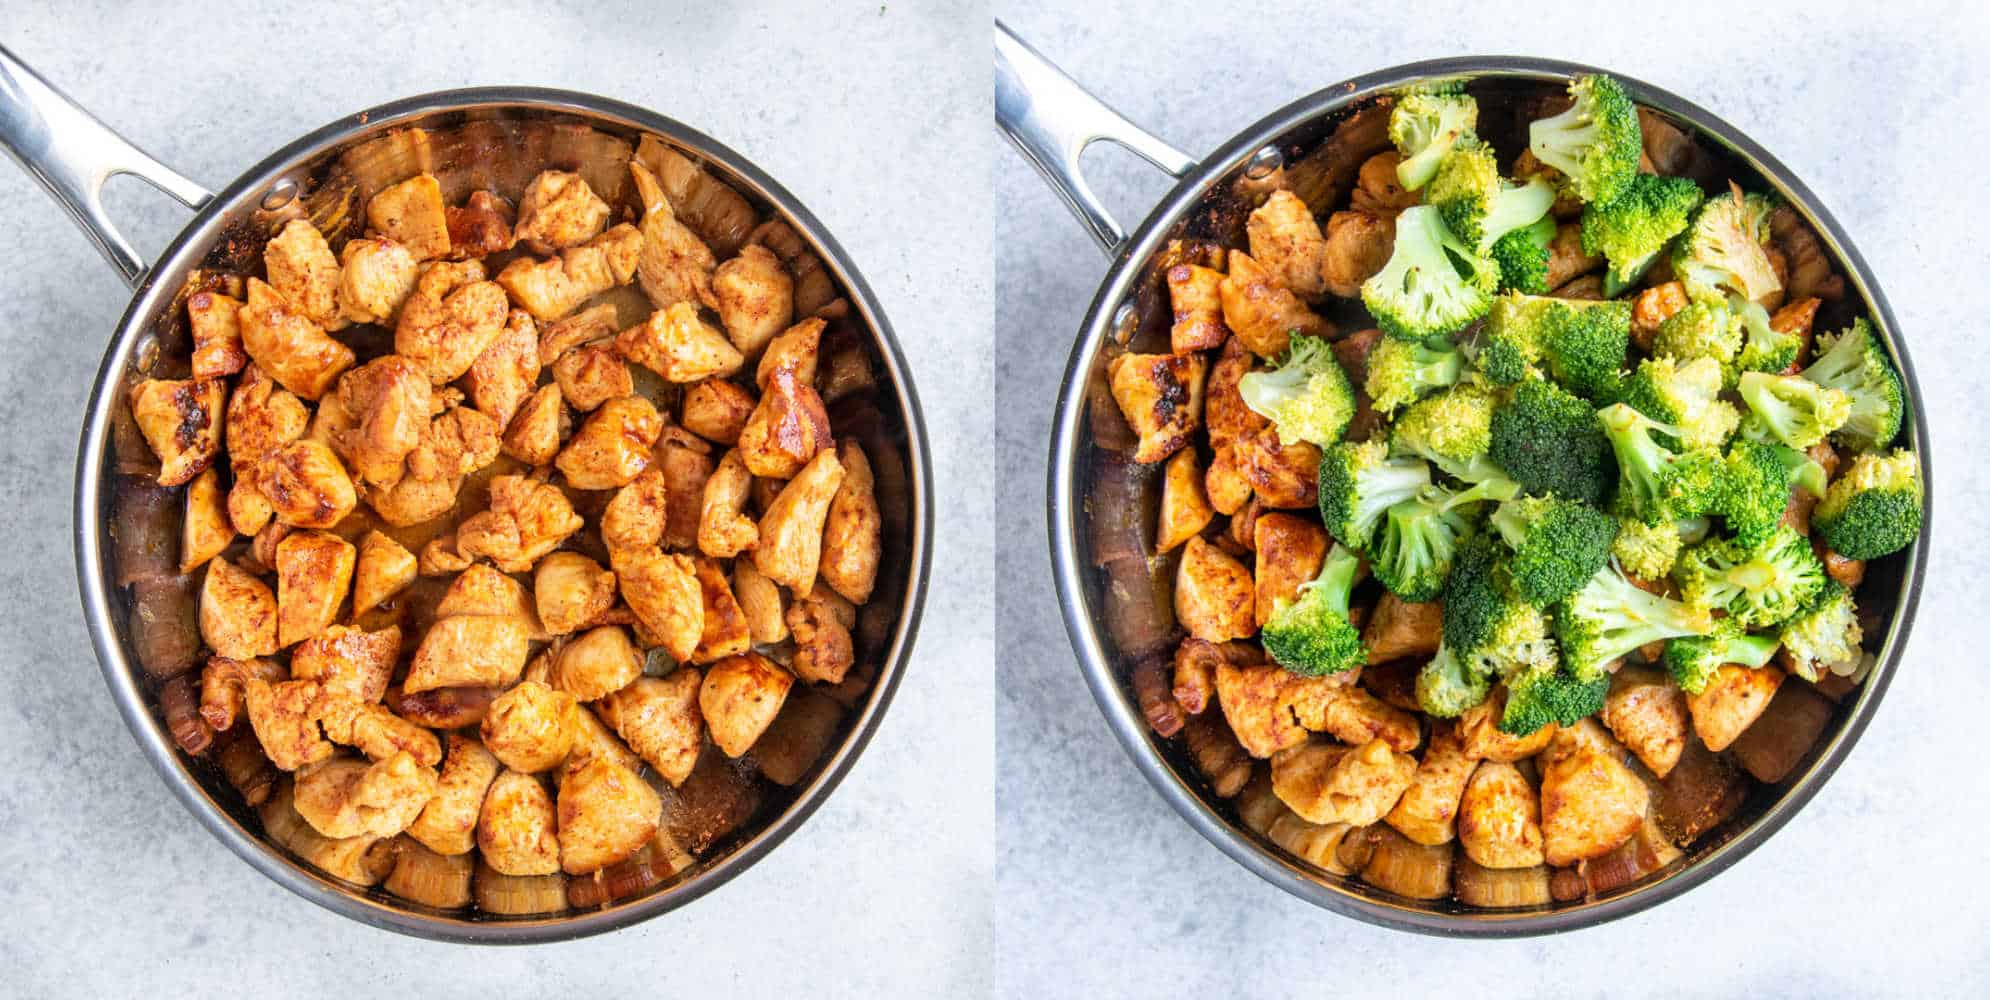 chicken in a skillet with broccoli